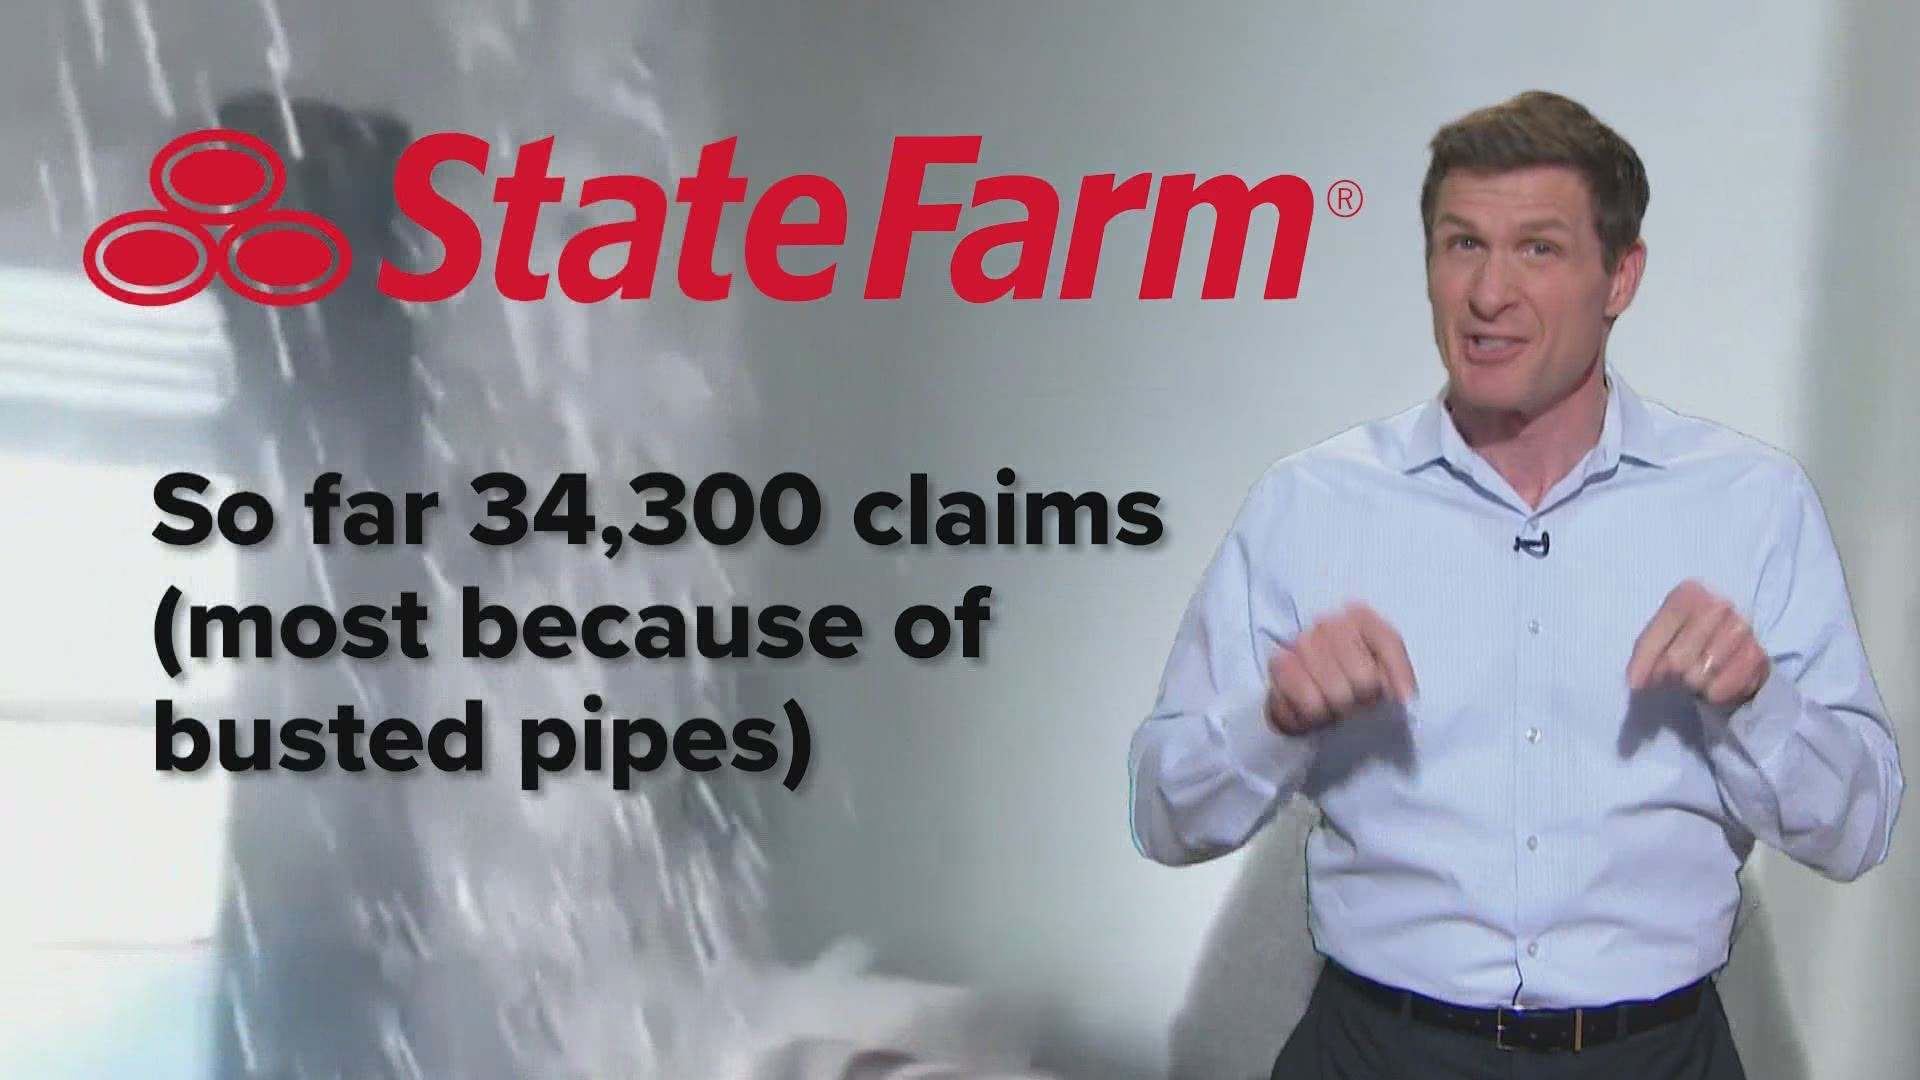 State Farm Uses Video Adjustments For Texas Winter Storm Claims Wfaa Com